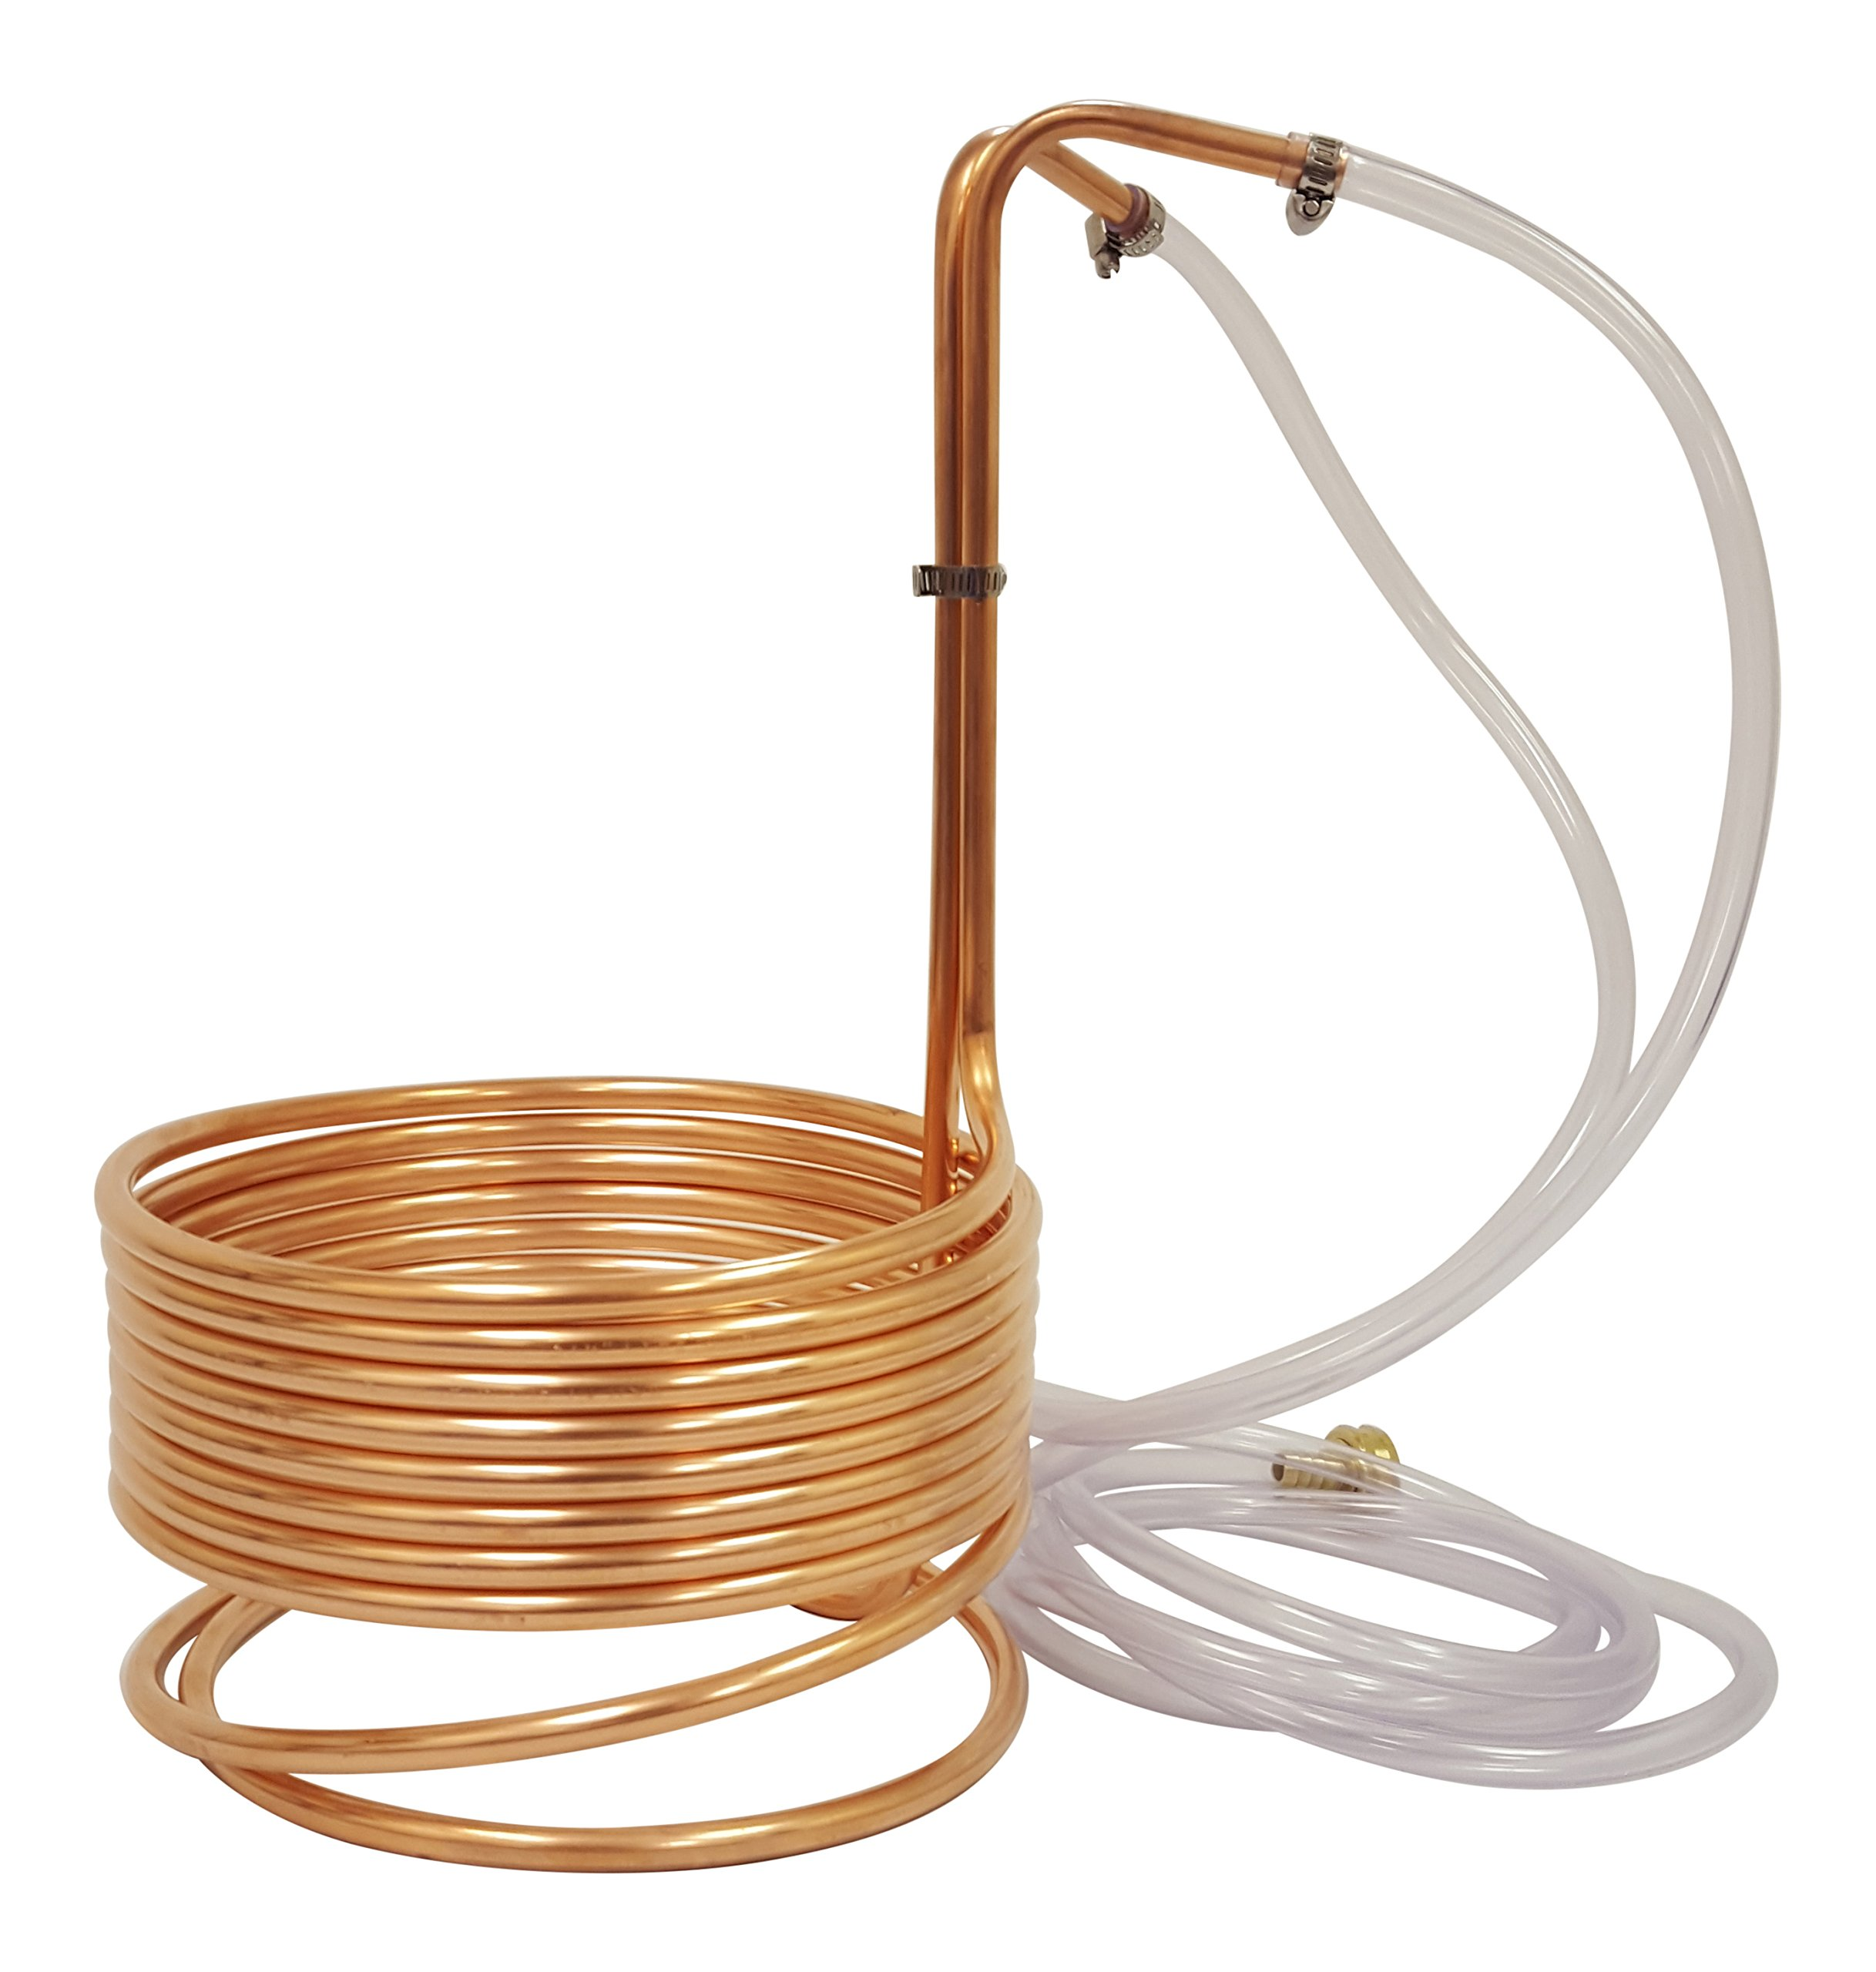 NY Brew Supply Wort Chiller, 3/8'' x 25', Copper